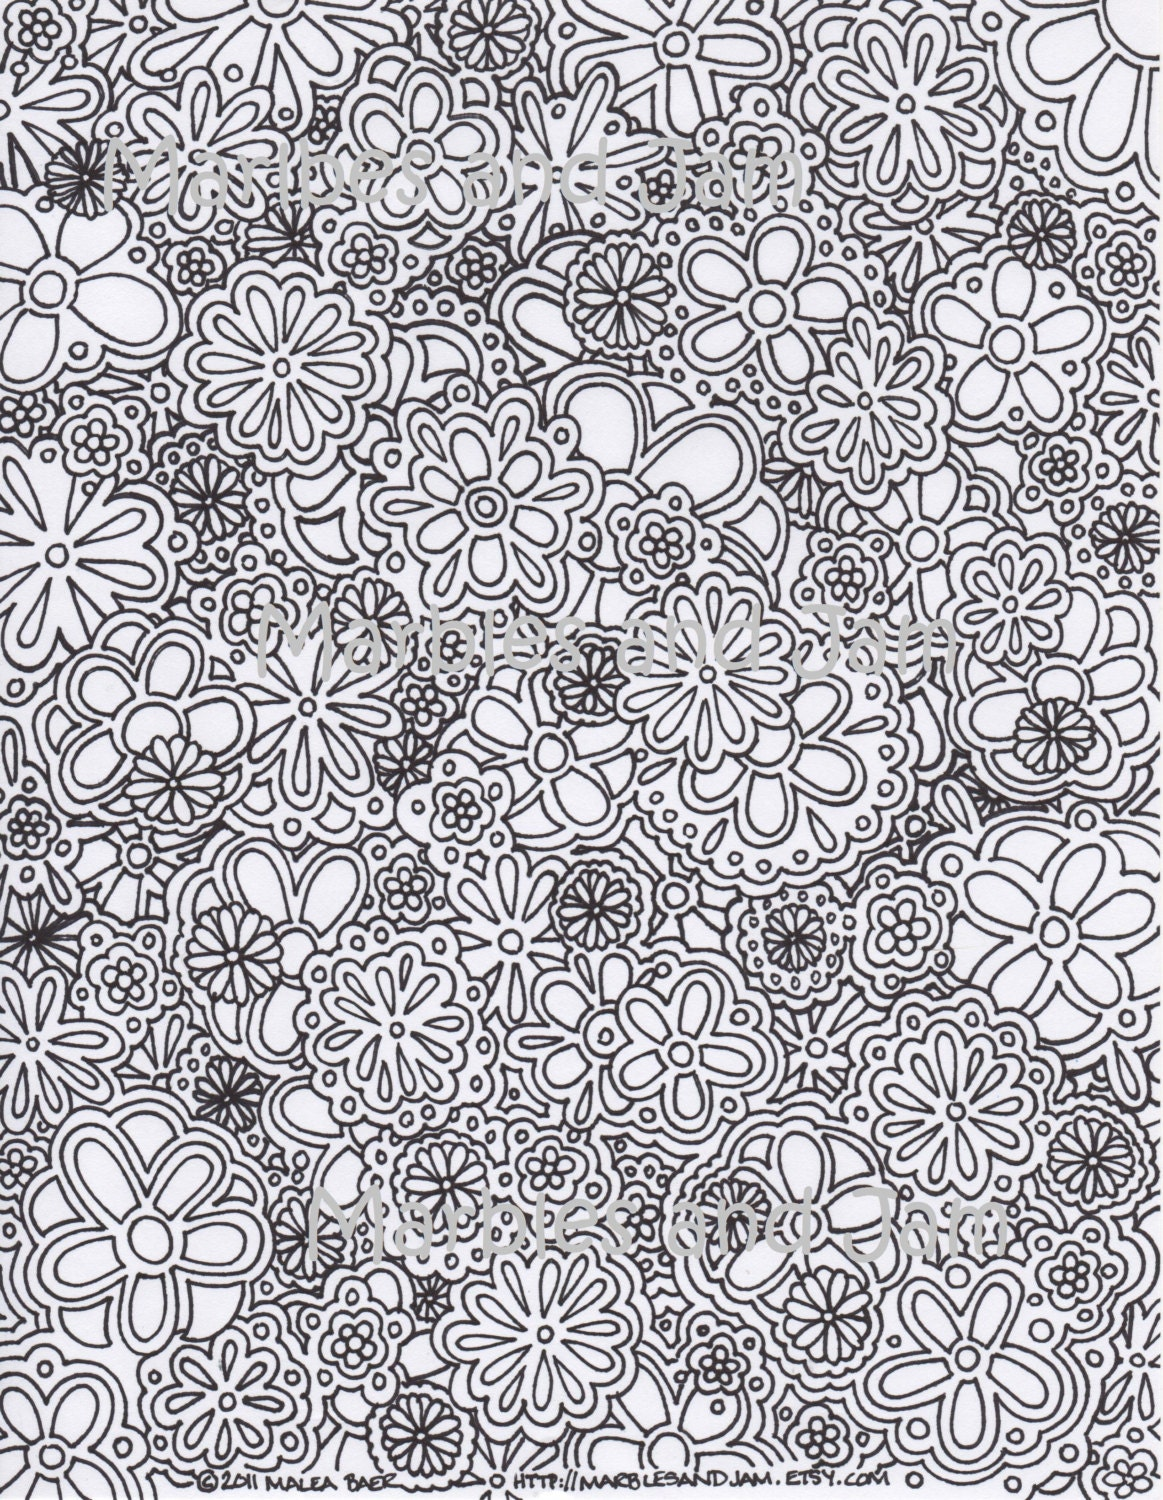 Flowers Abstract Coloring Page By MarblesAndJam On Etsy